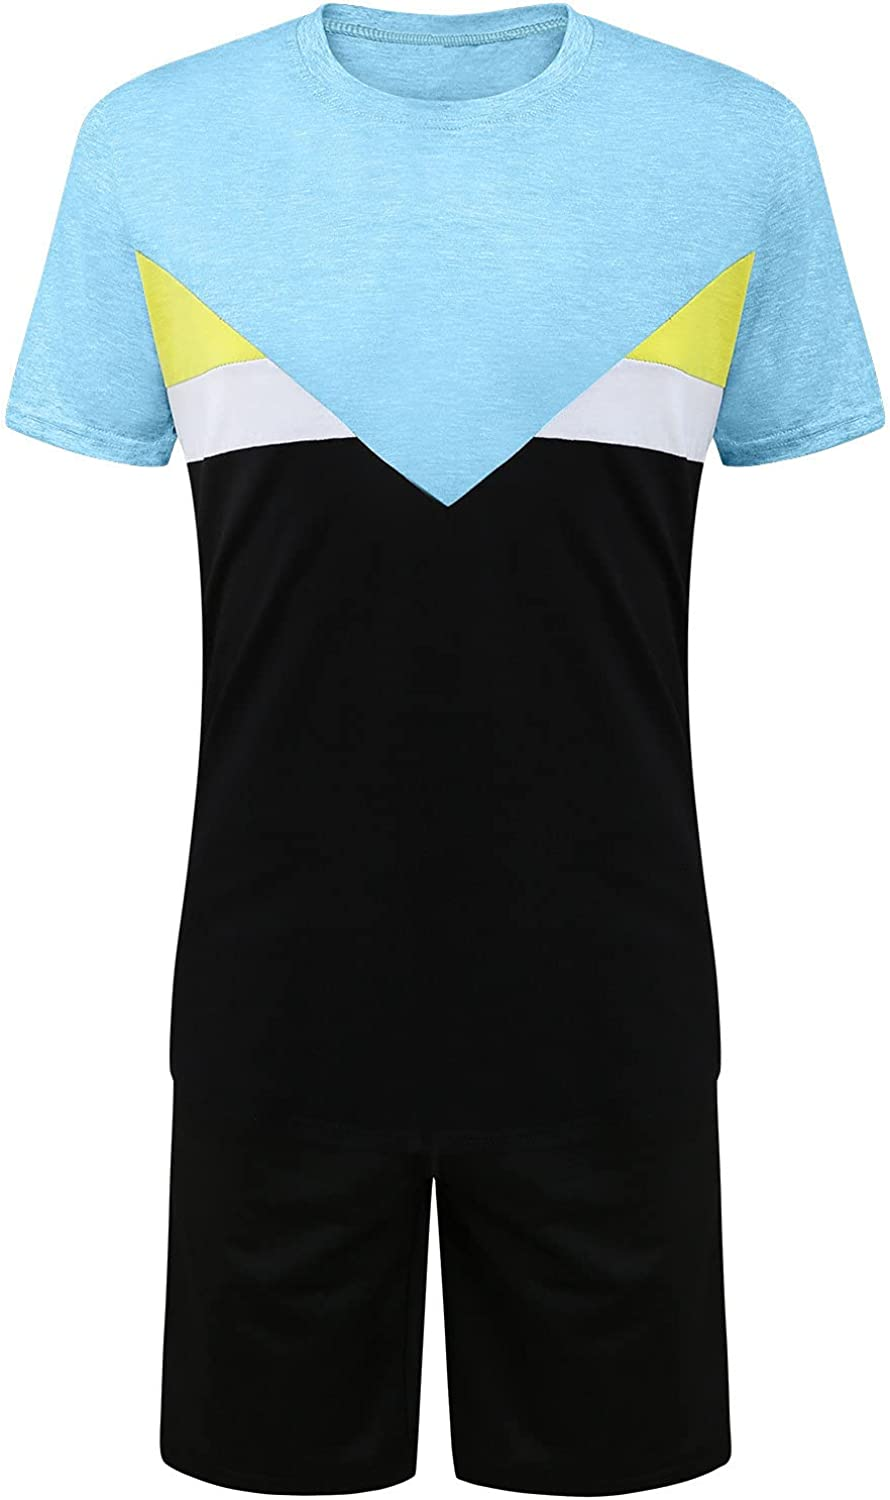 DZQUY Mens Summer Sport 2 Piece Short Outfits Short Sleeve Hipster Muscle T-Shirts and Sports Shorts Set Workout Sweatsuit